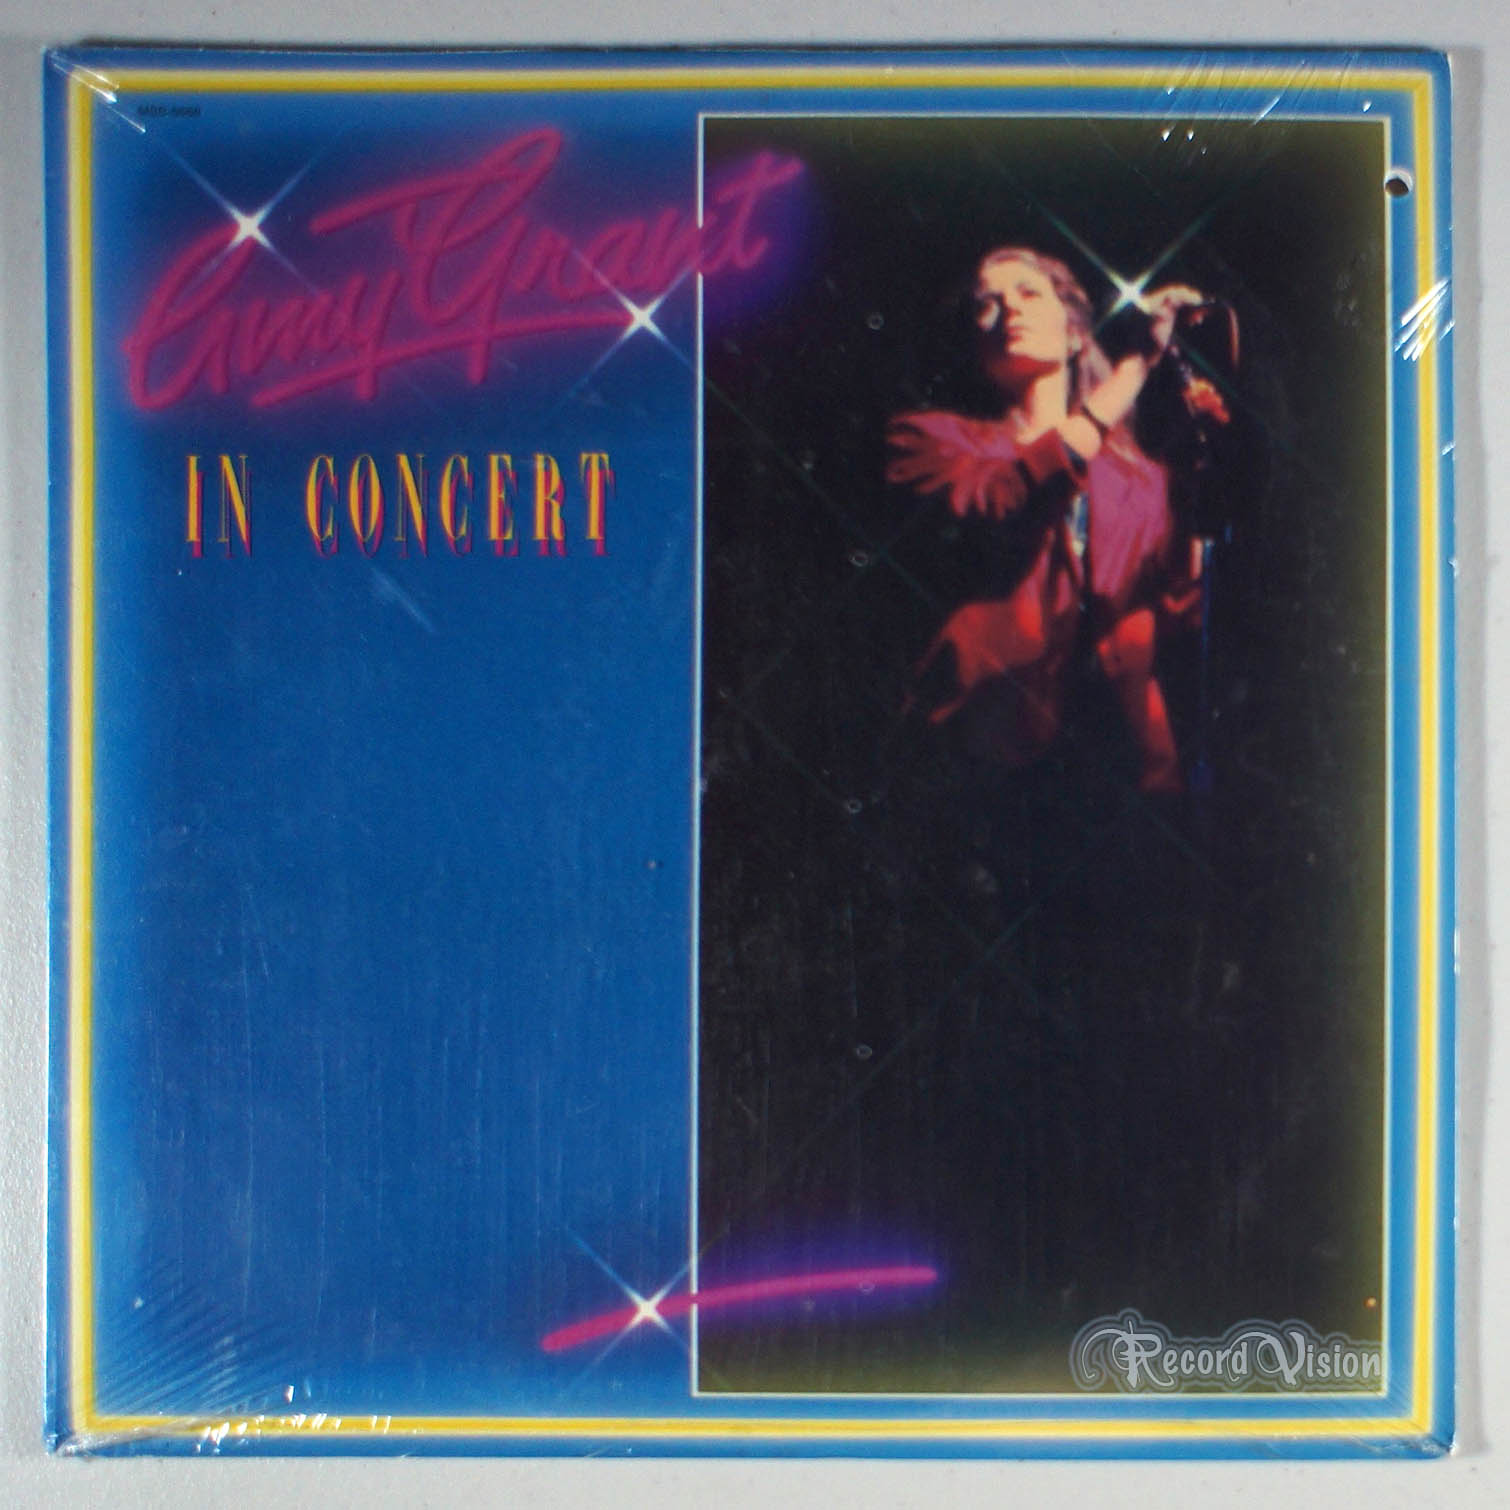 AMY GRANT - In Concert - 33T